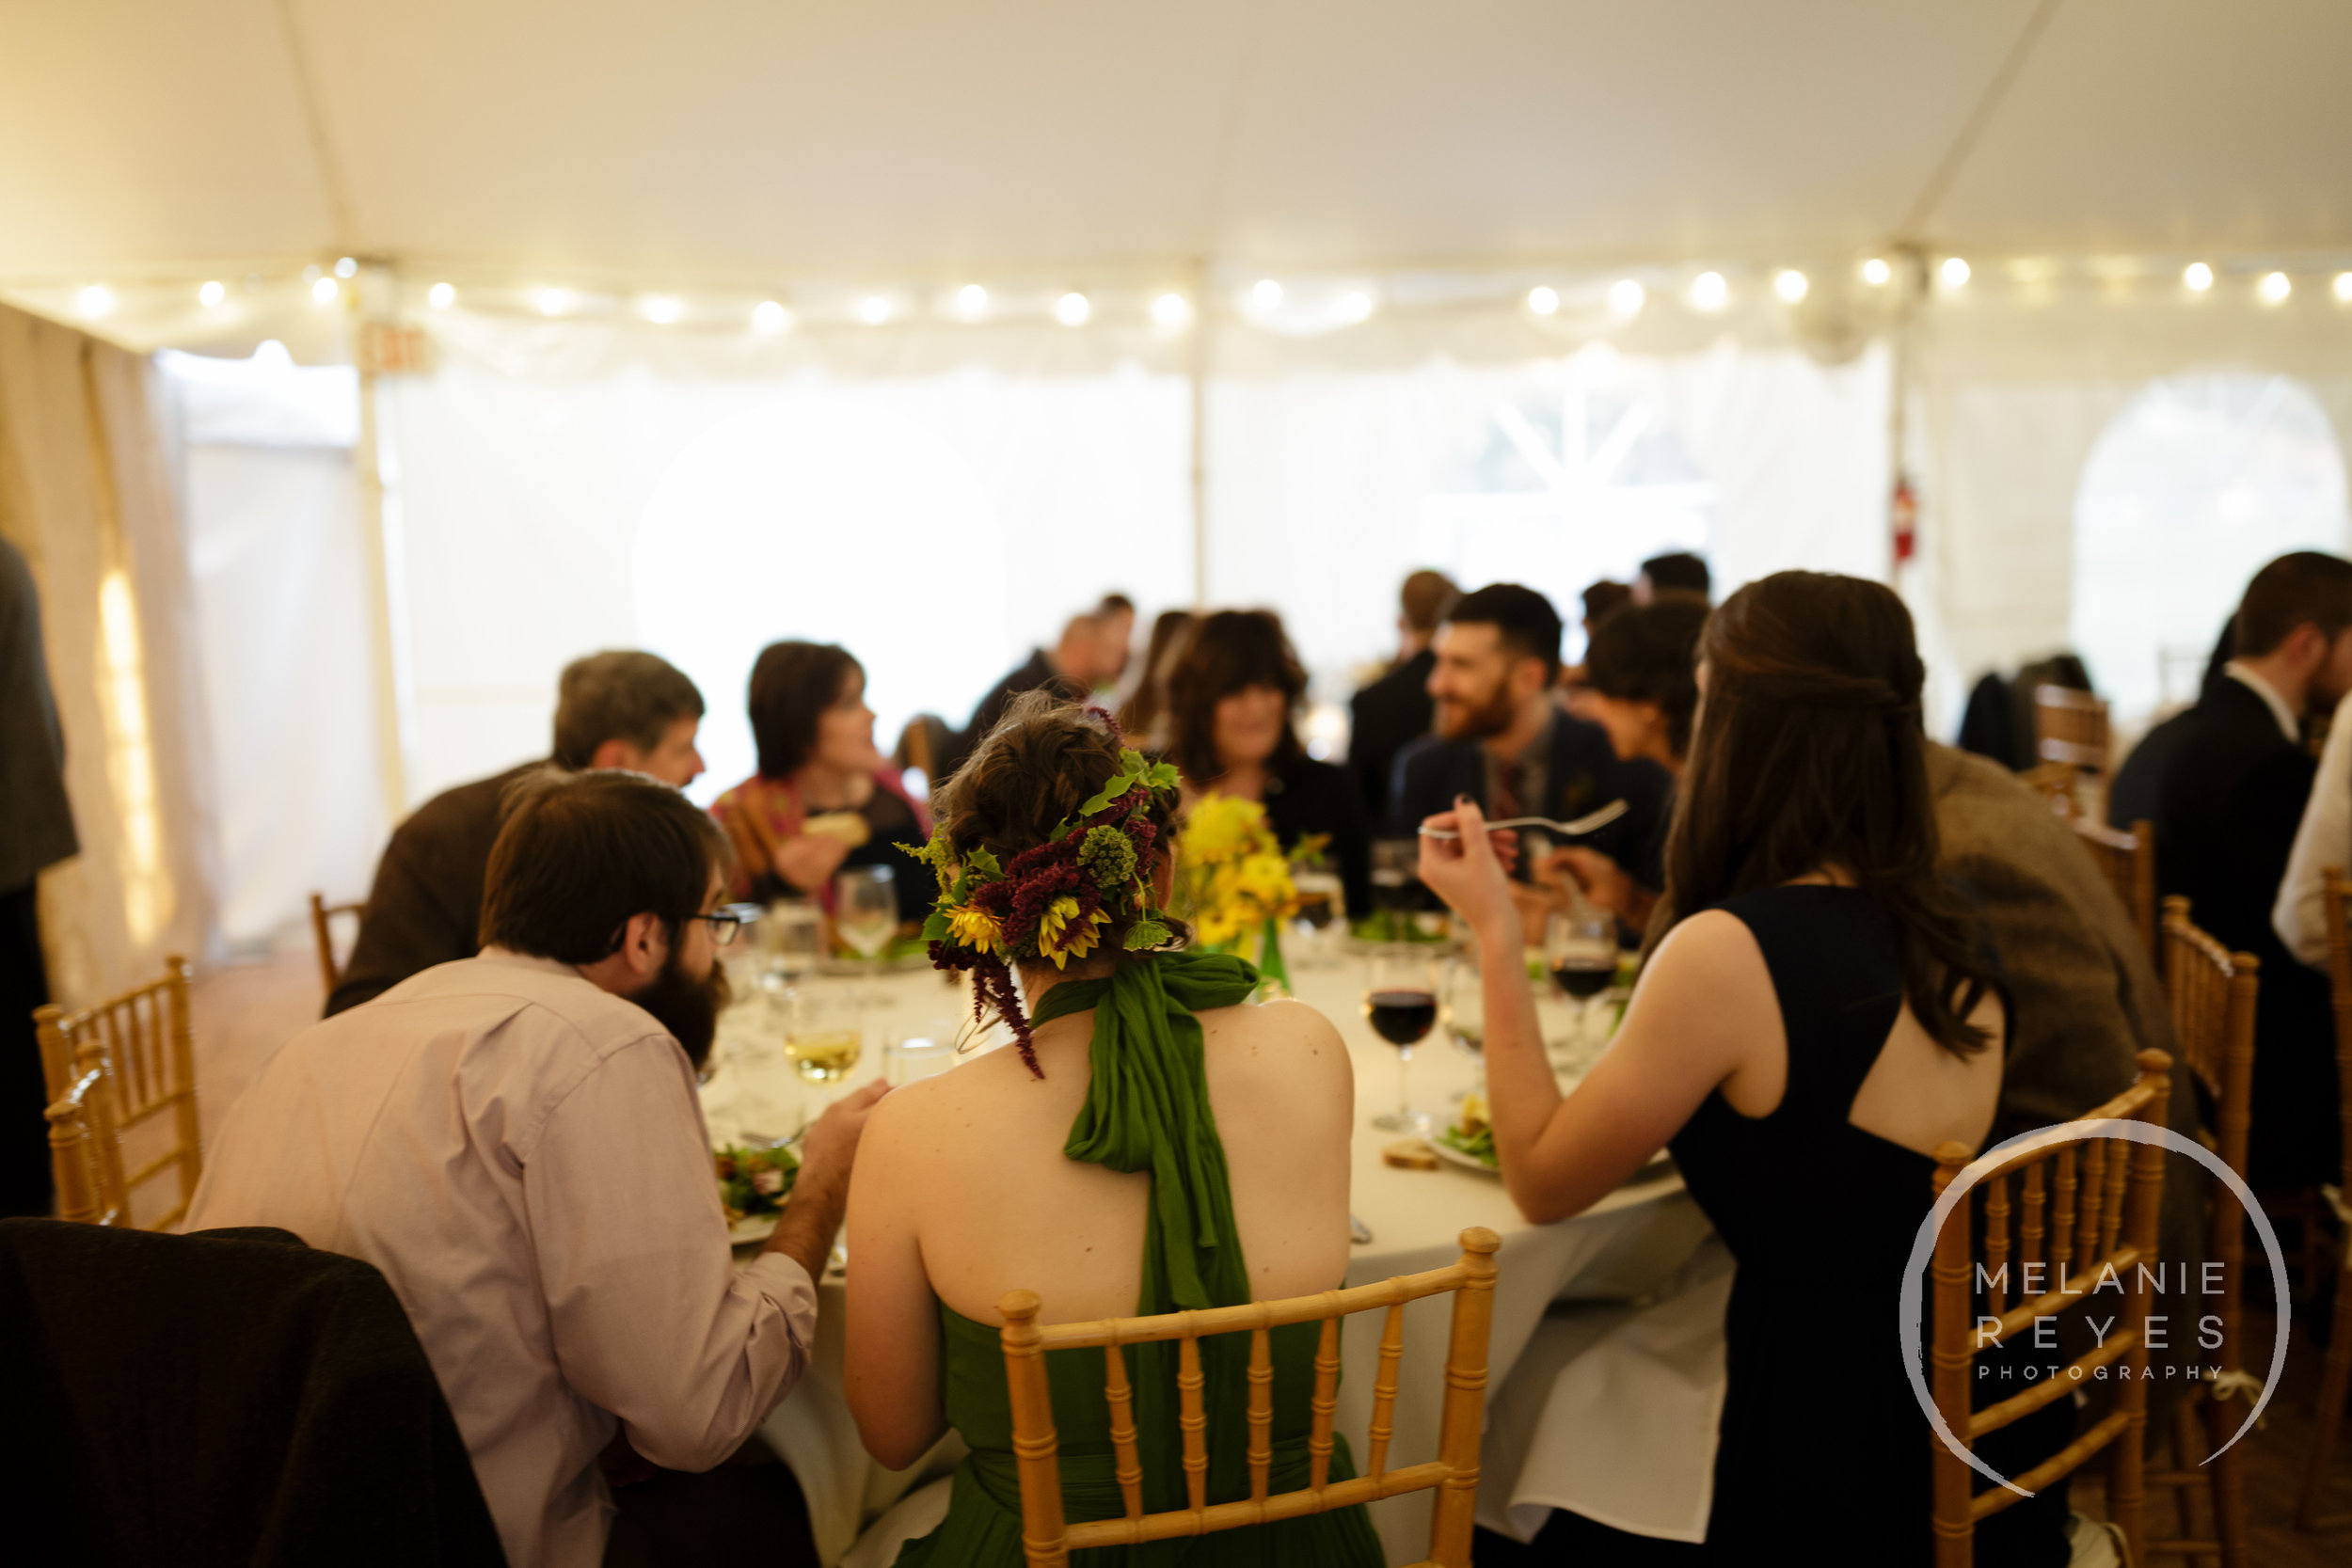 zingermans_cornman_farms_wedding_melanie_reyes_photography_045.JPG